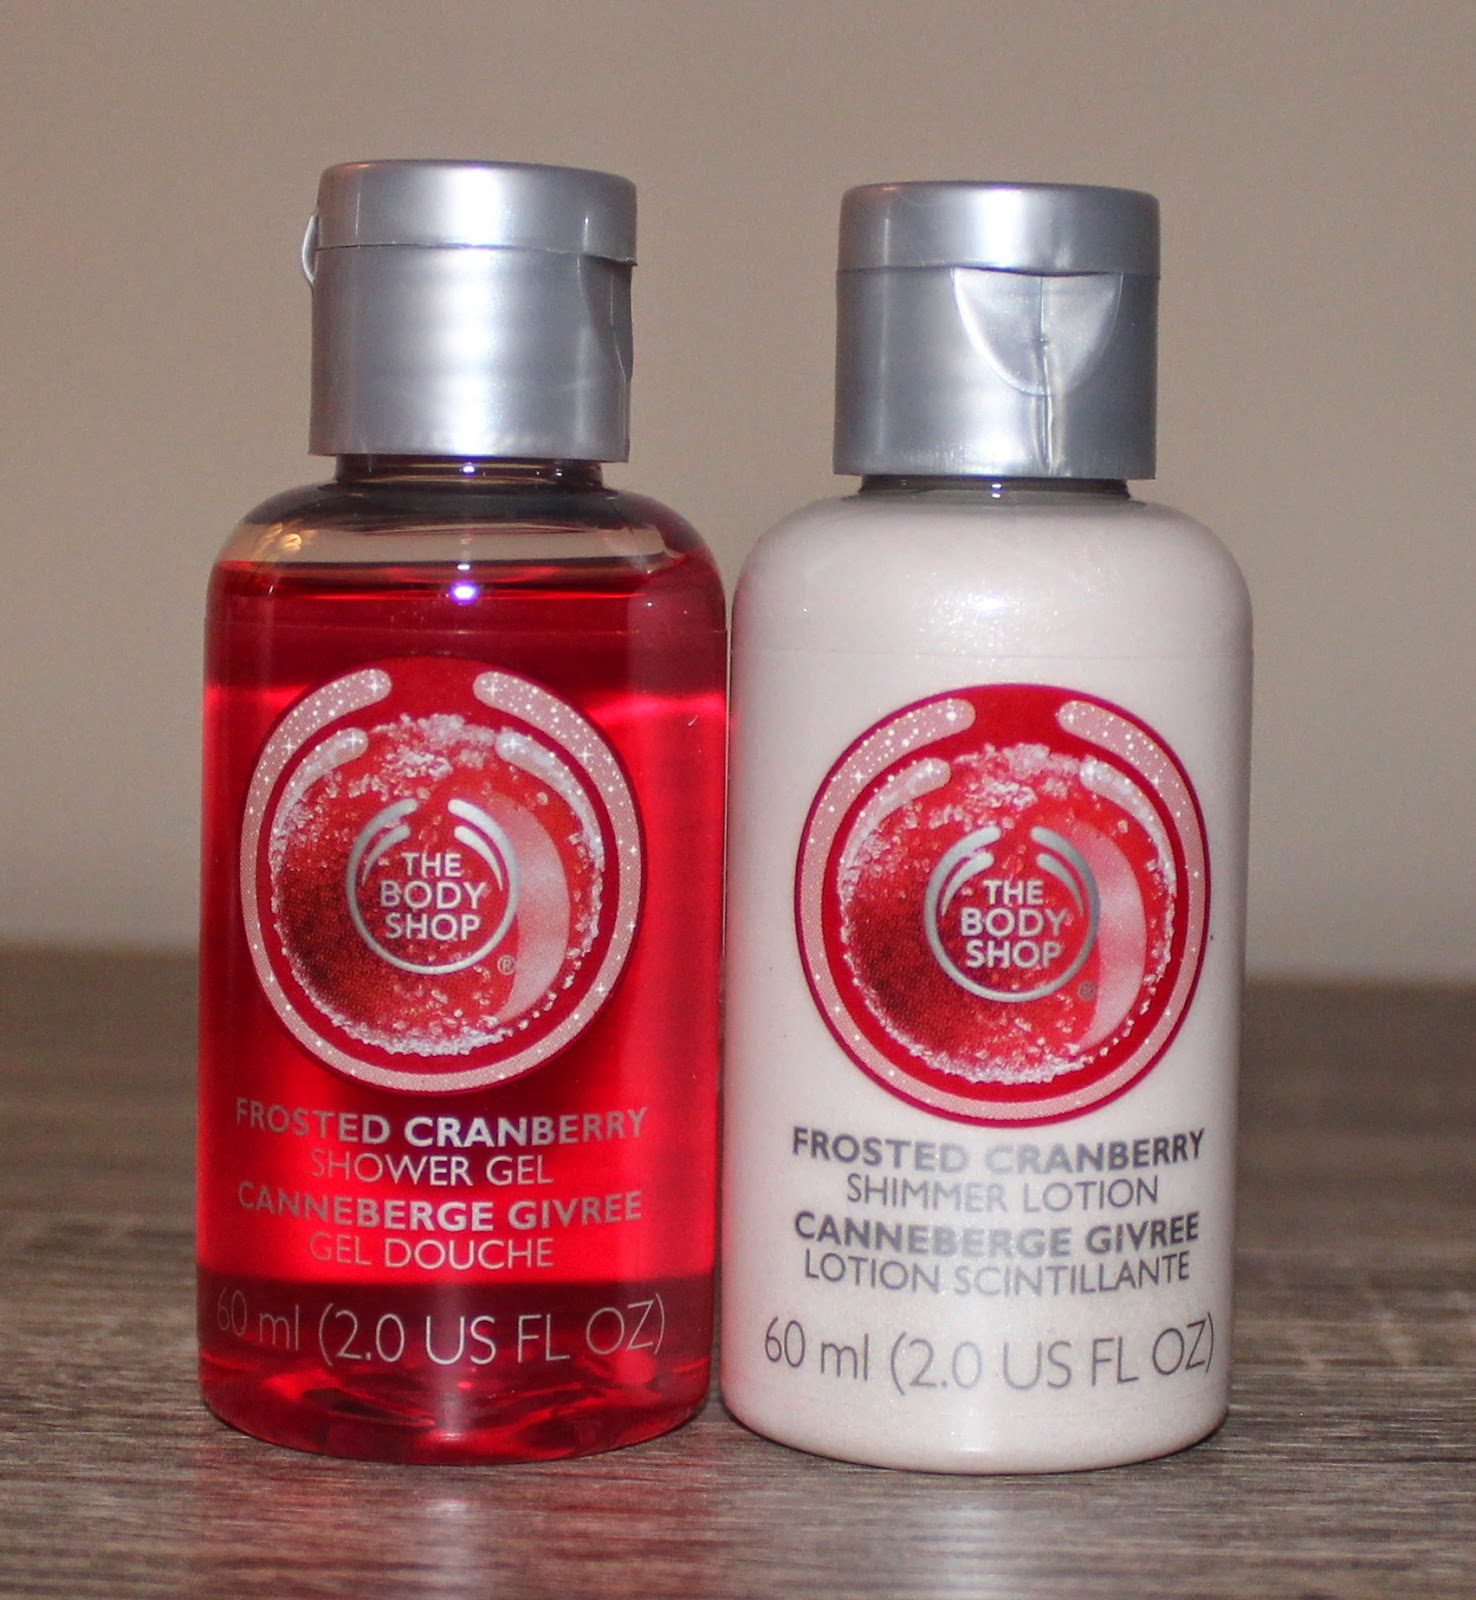 The Body Shop Frosted Cranberry Shower Gel & Shimmer Lotion